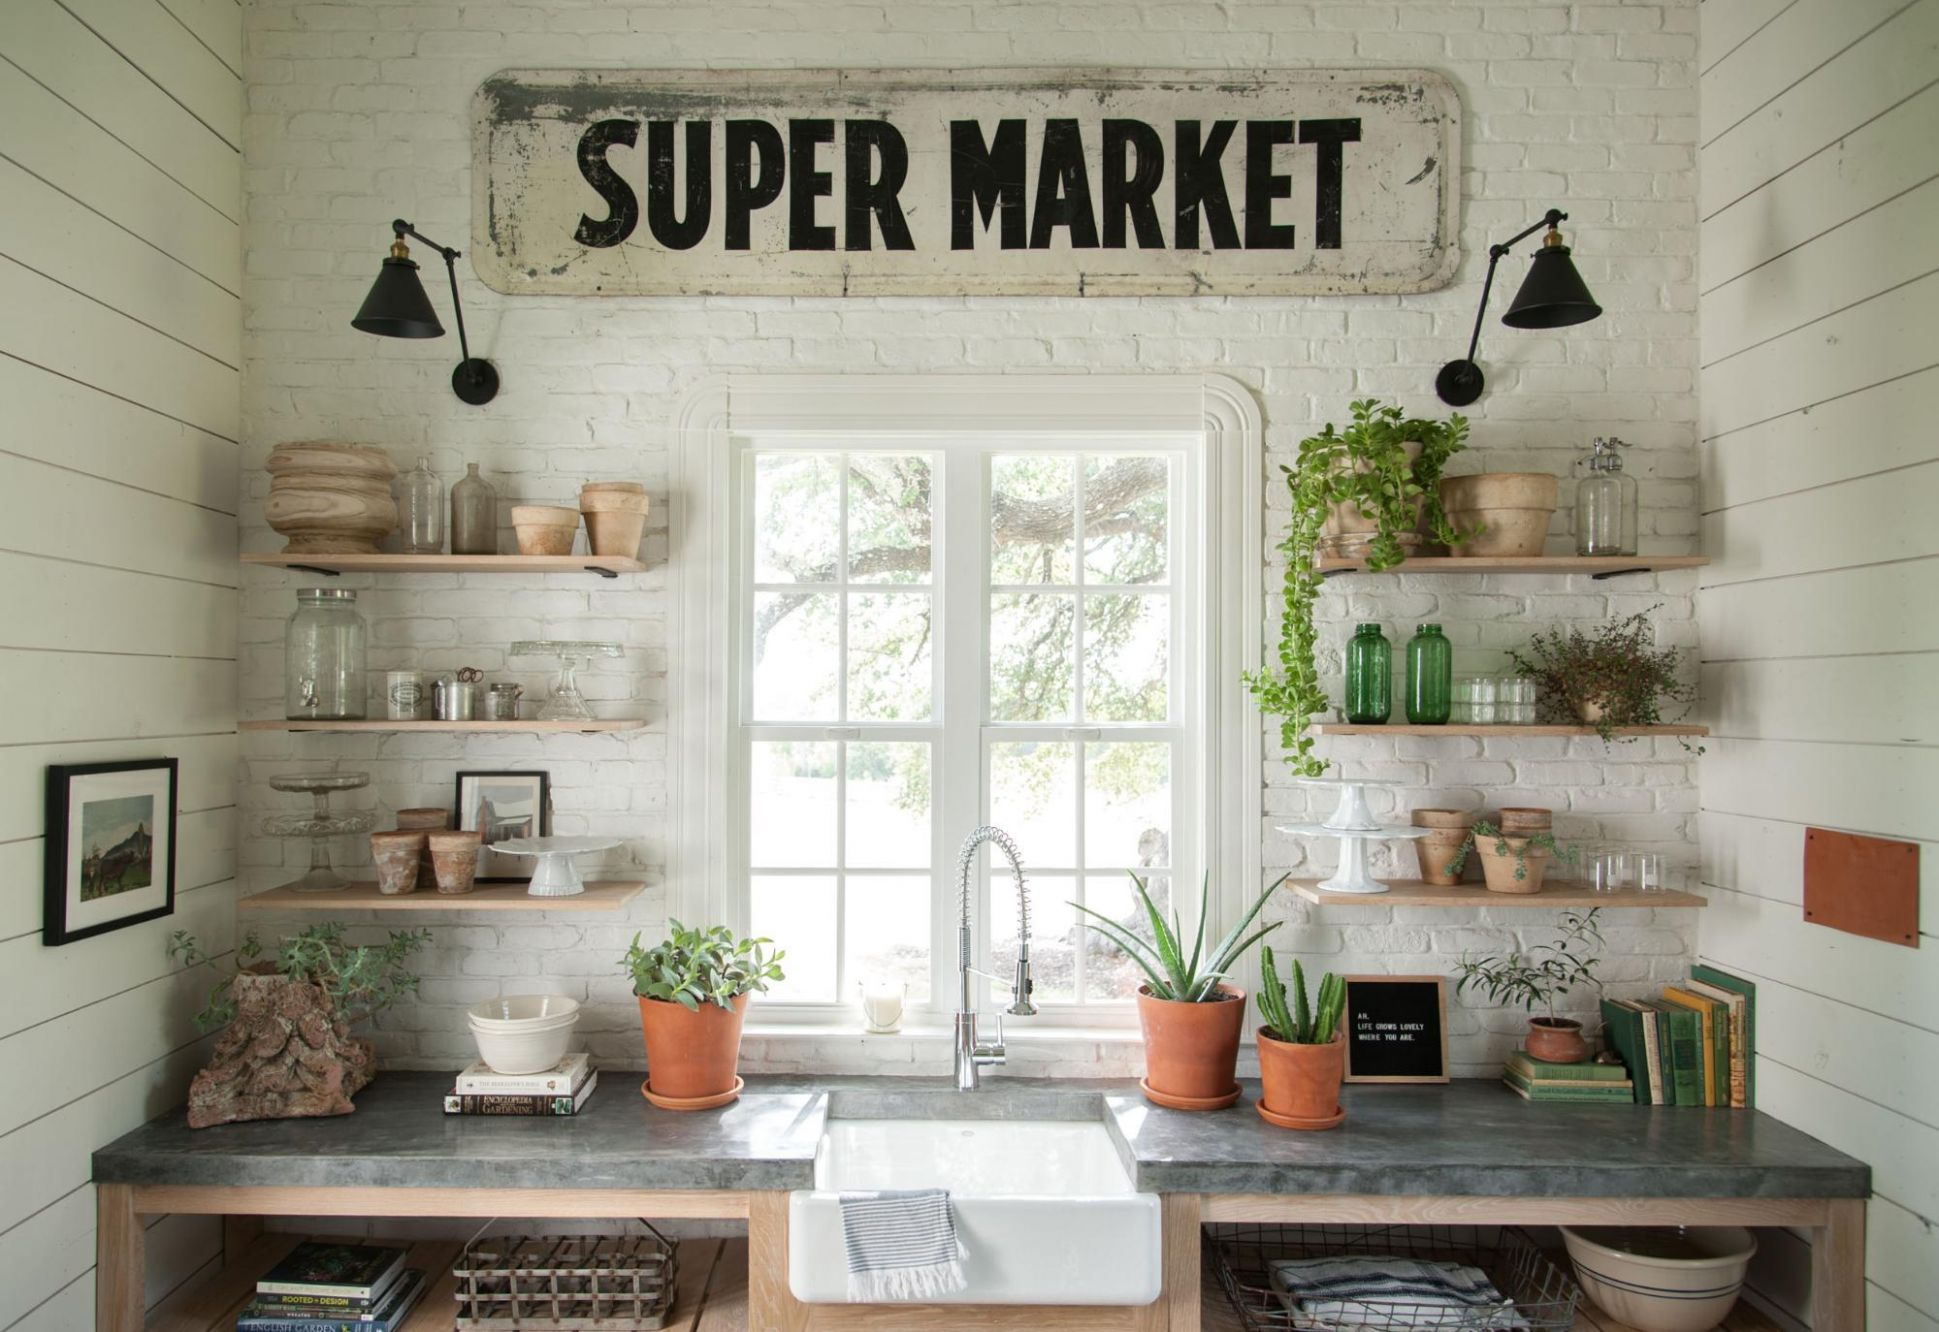 Joanna Gaines Swears By These Laundry Room Essentials